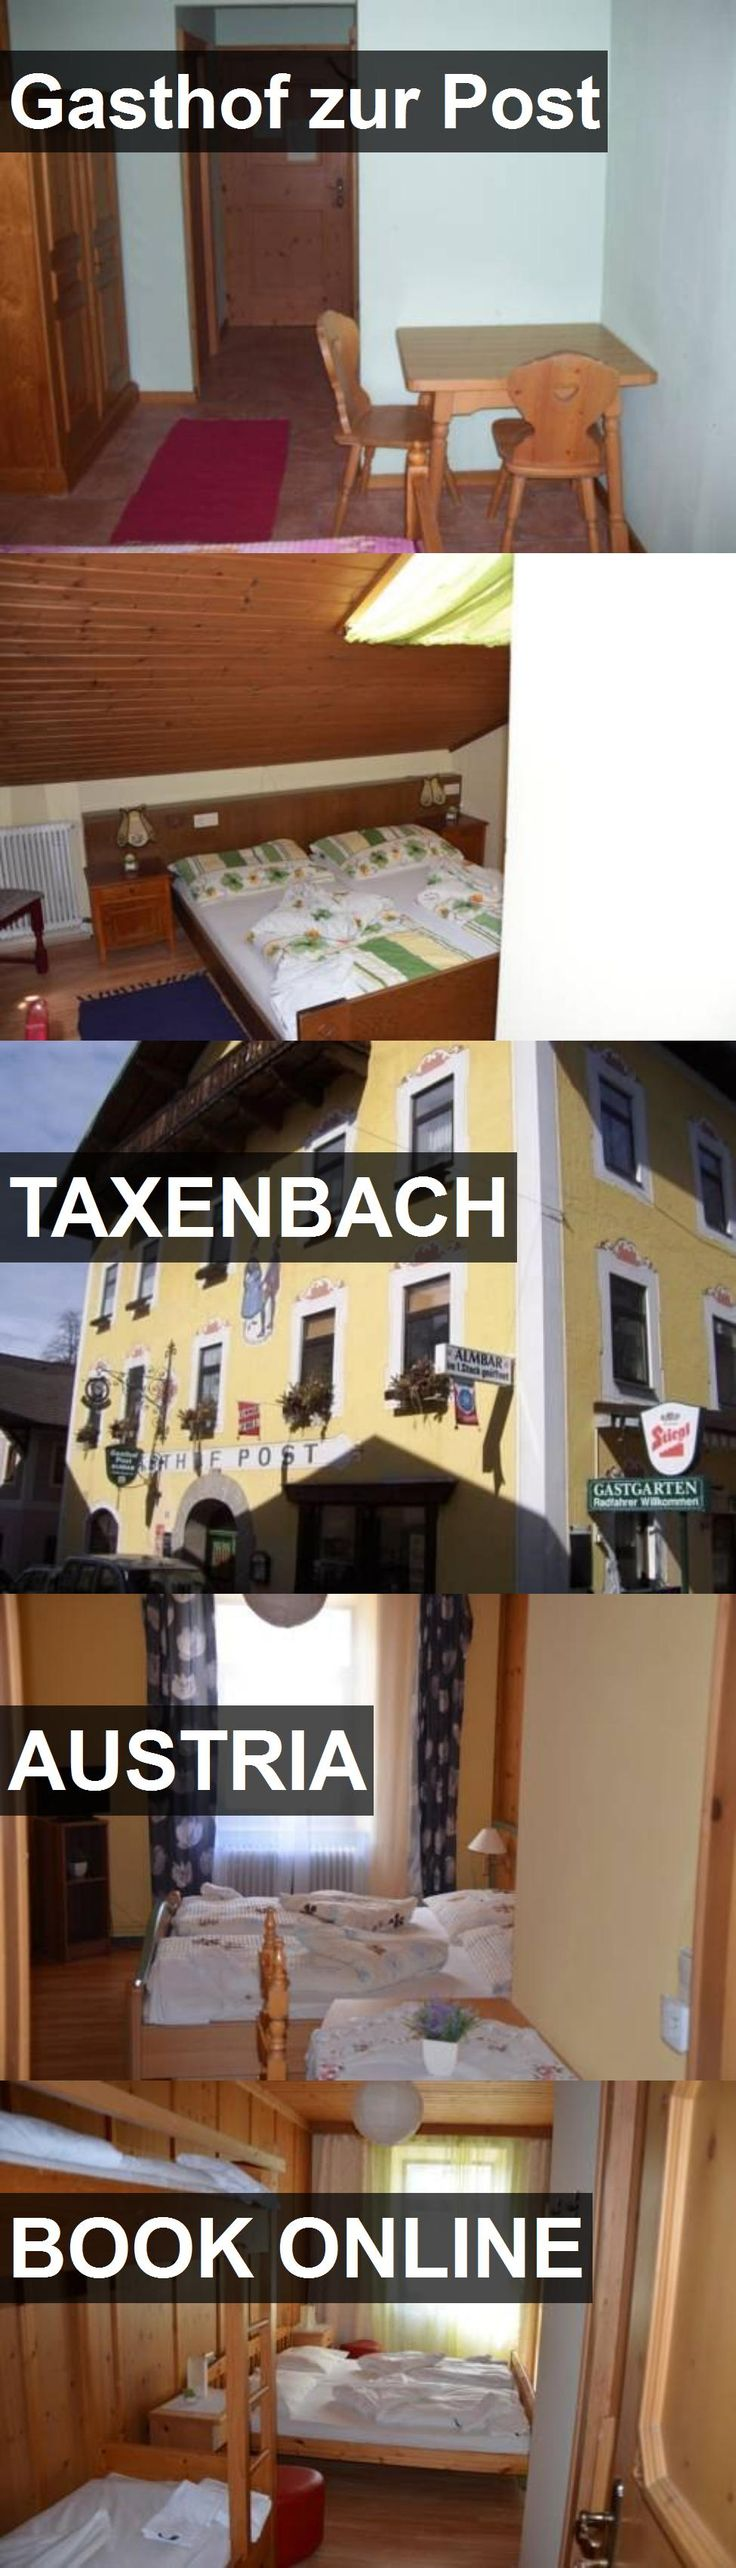 Hotel Gasthof zur Post in Taxenbach, Austria. For more information, photos, reviews and best prices please follow the link. #Austria #Taxenbach #travel #vacation #hotel